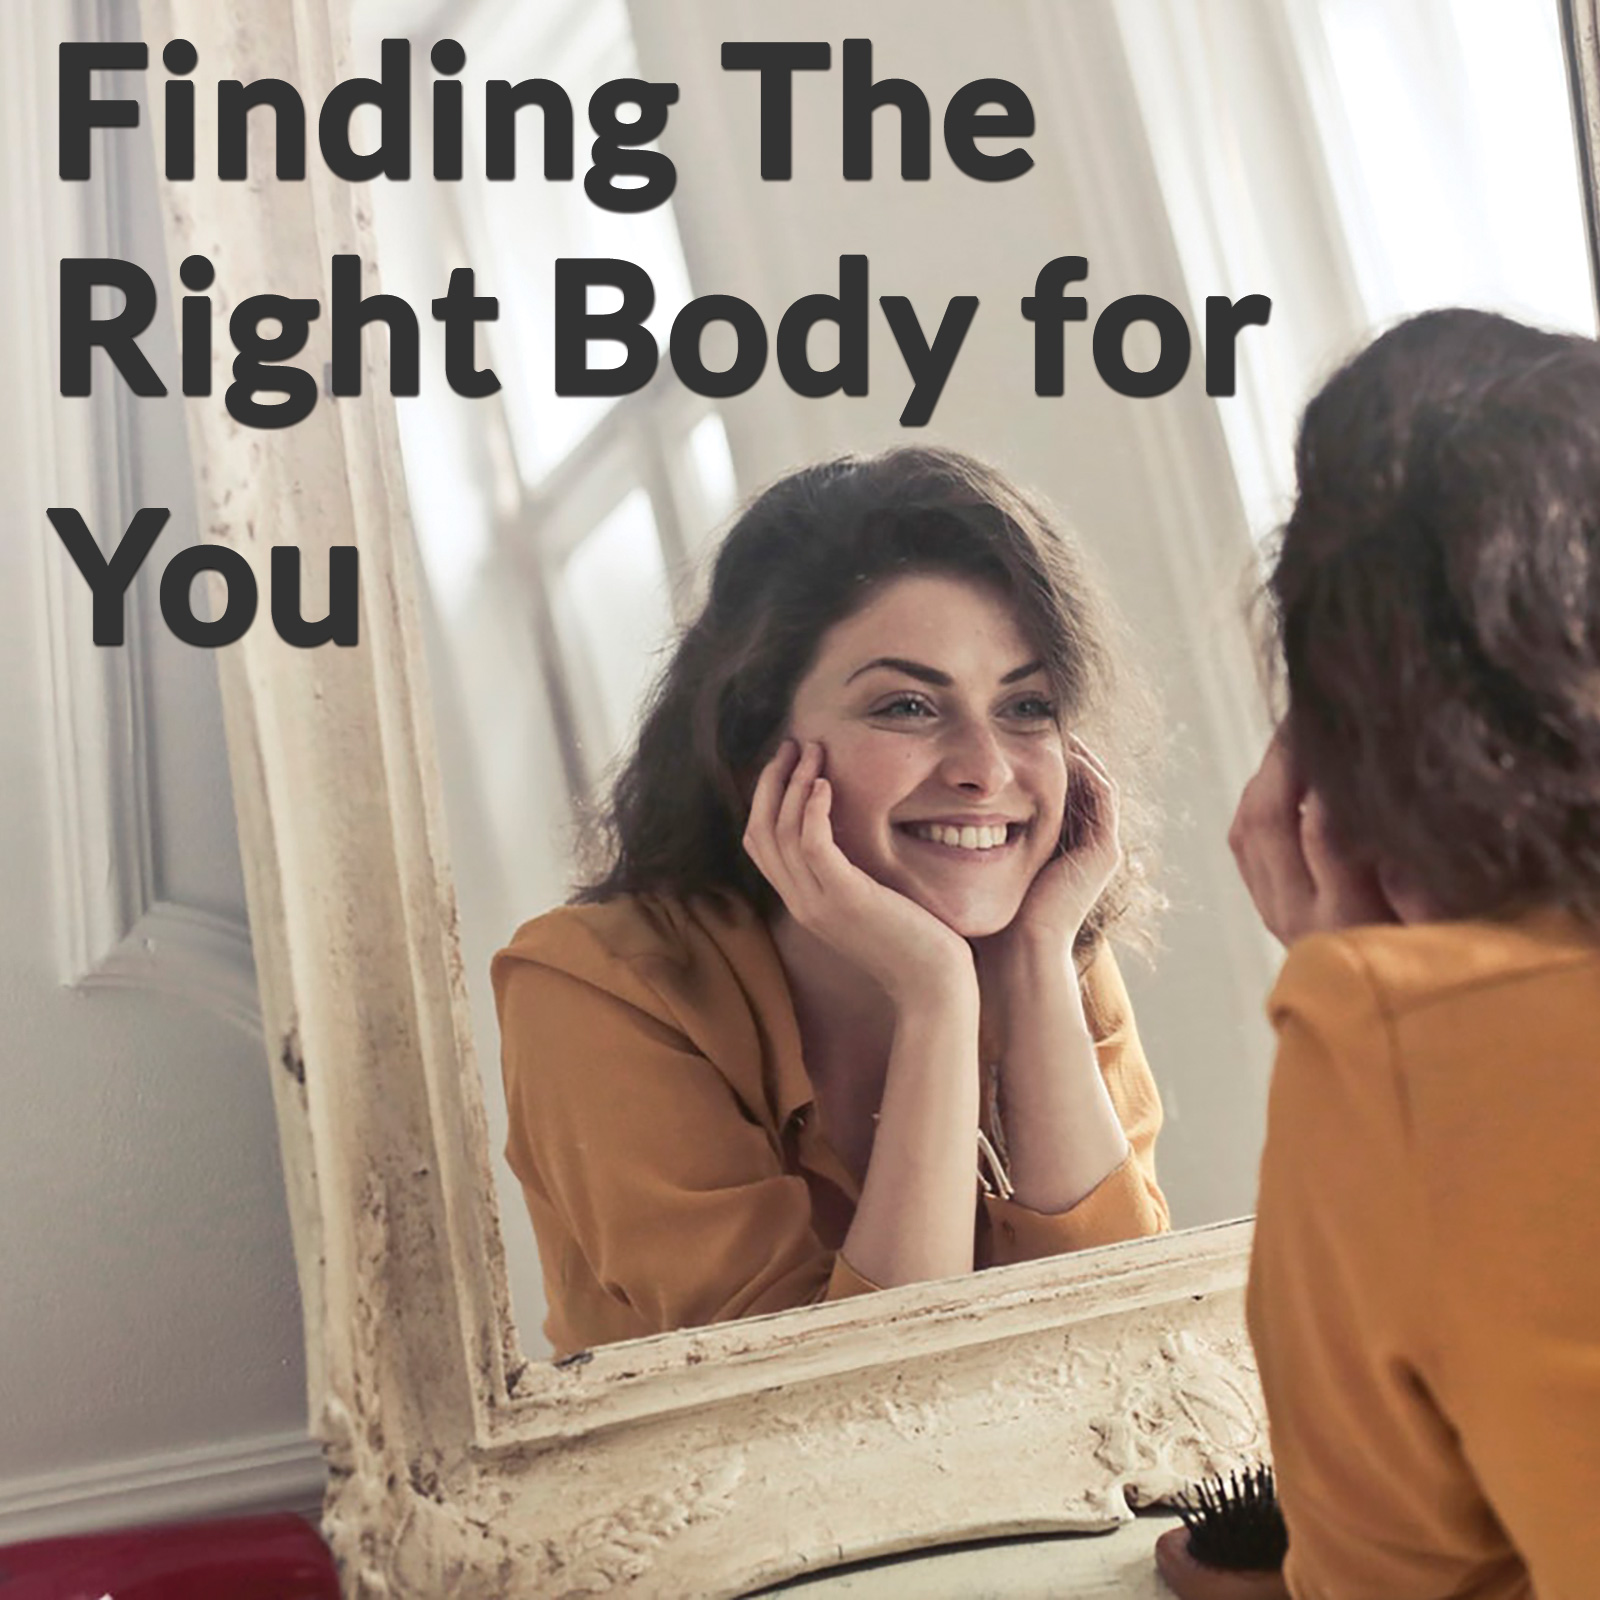 Finding the Right Body for You